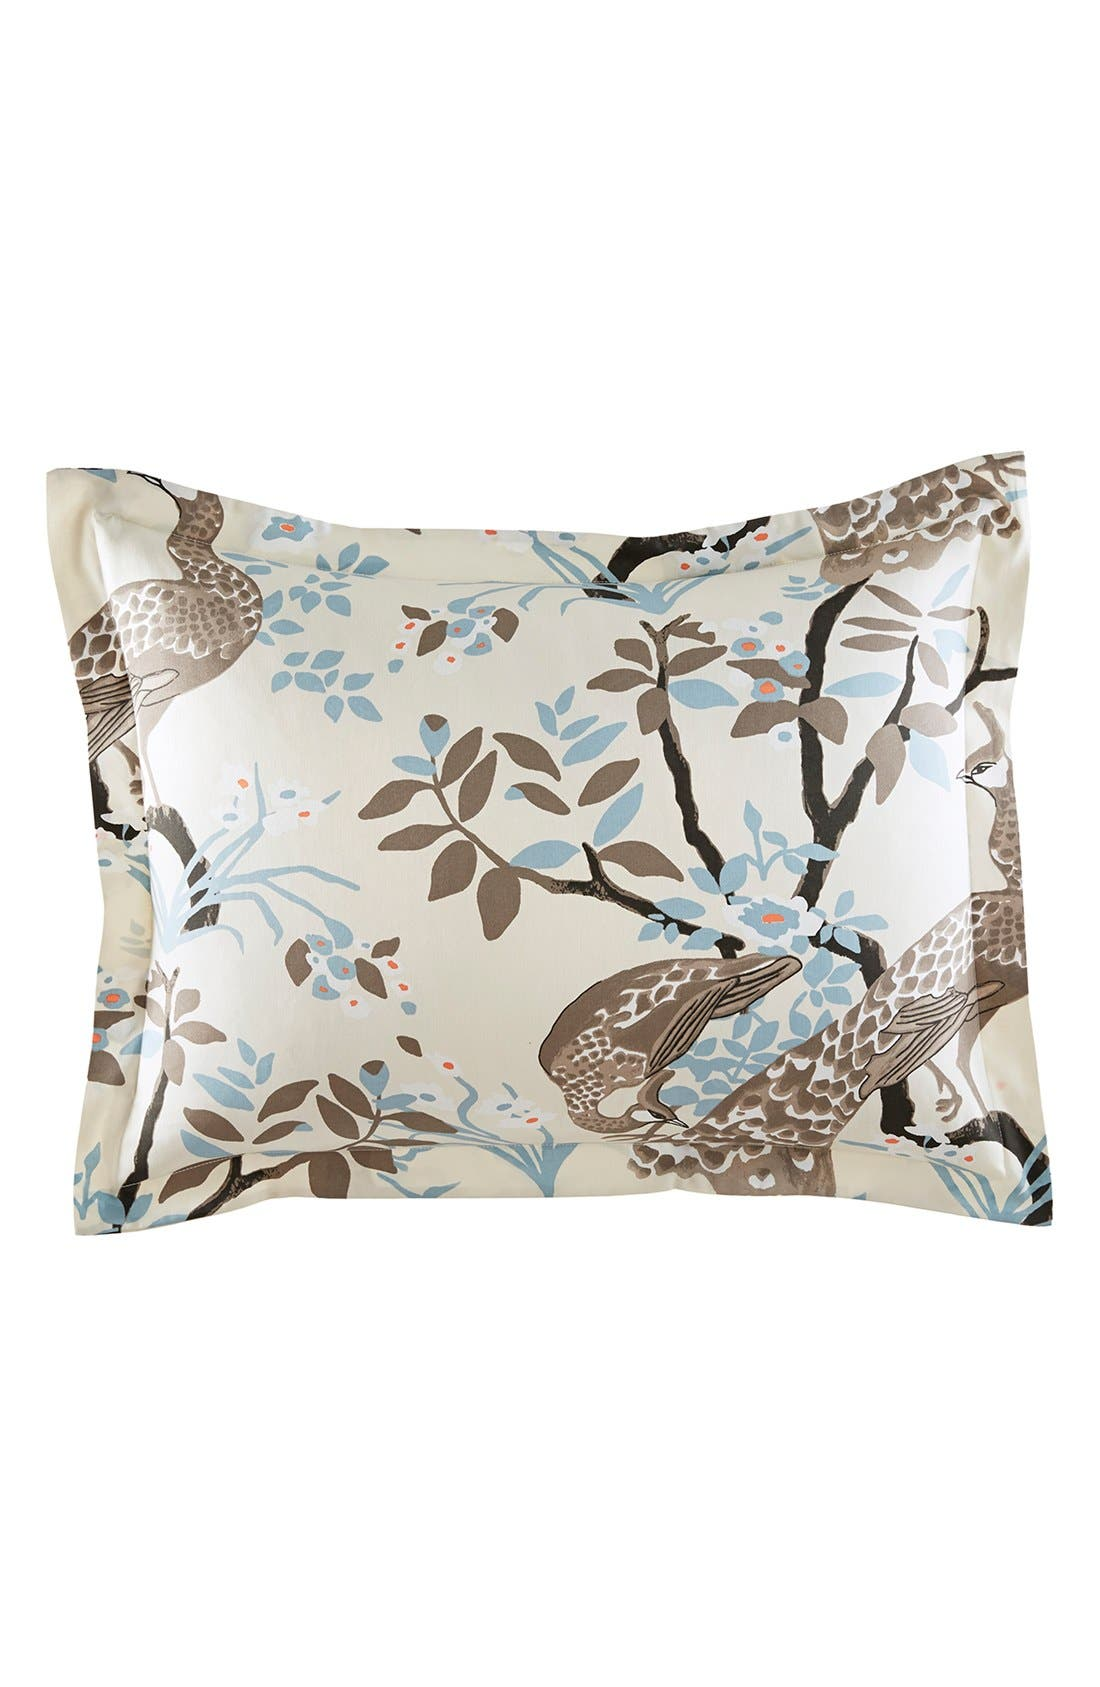 Main Image - DwellStudio 'Peacock' Shams (Set of 2)